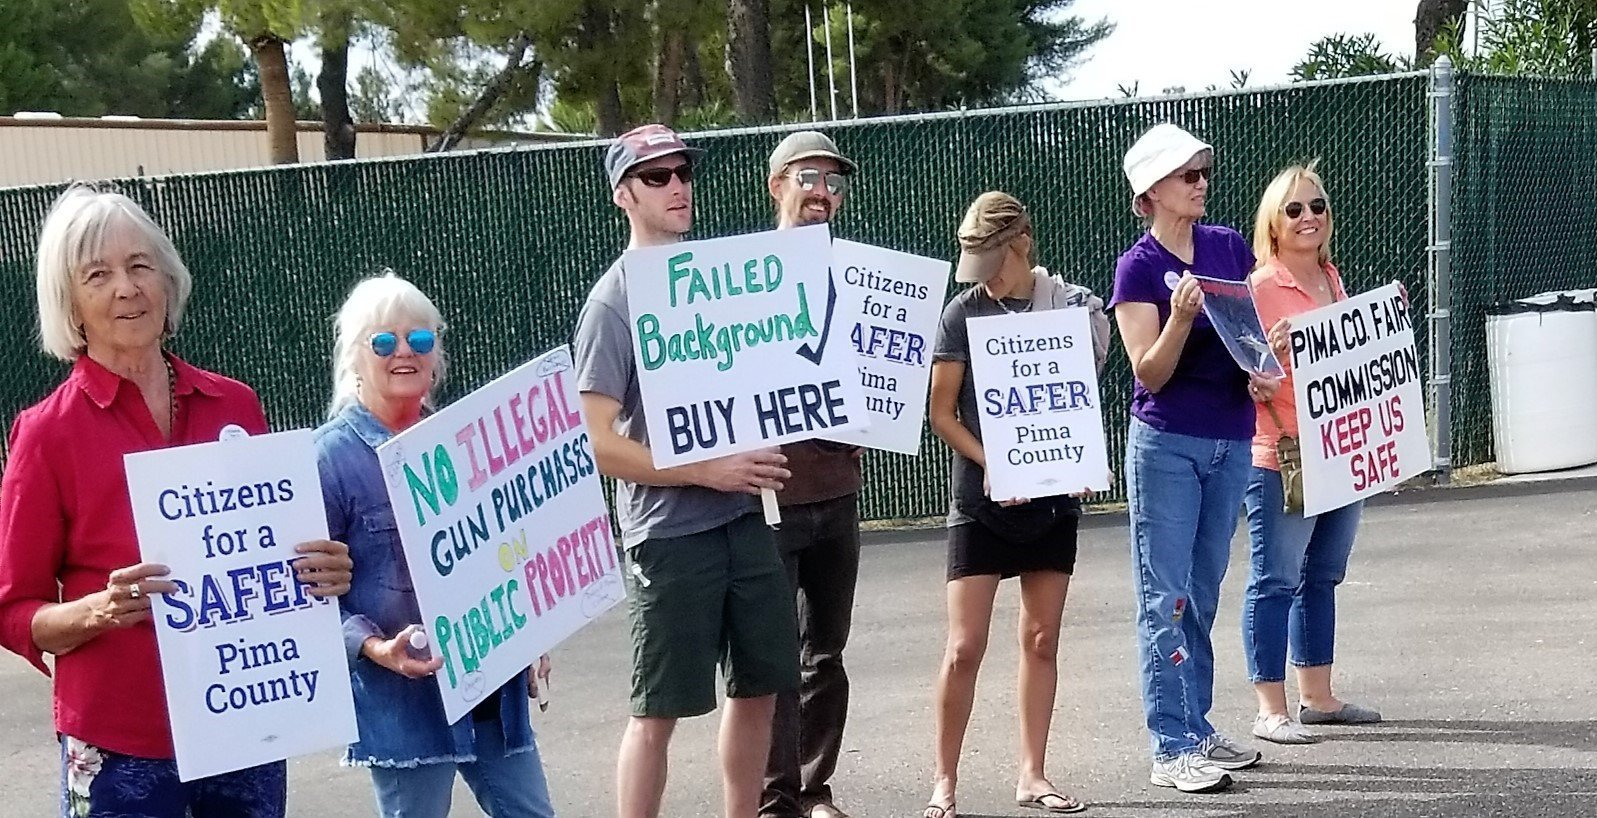 County Leaders Support Gun Show Background Checks